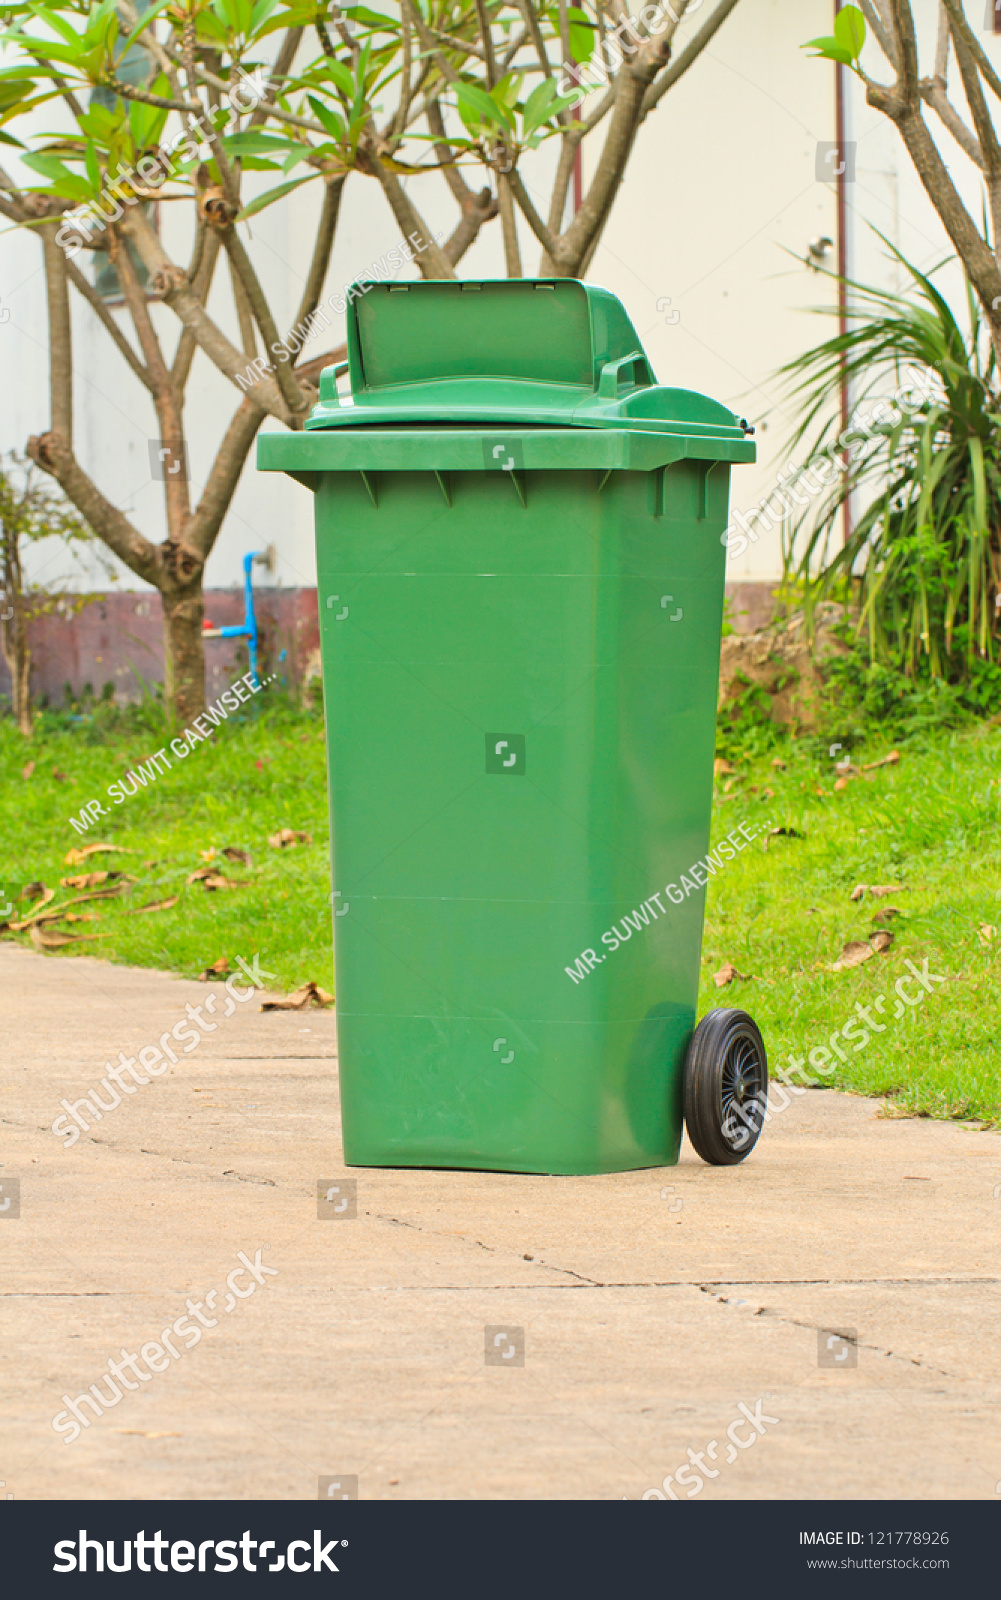 Green garbage bin with wheels on road stock photo 121778926 shutterstock - Rd rubbish bin ...